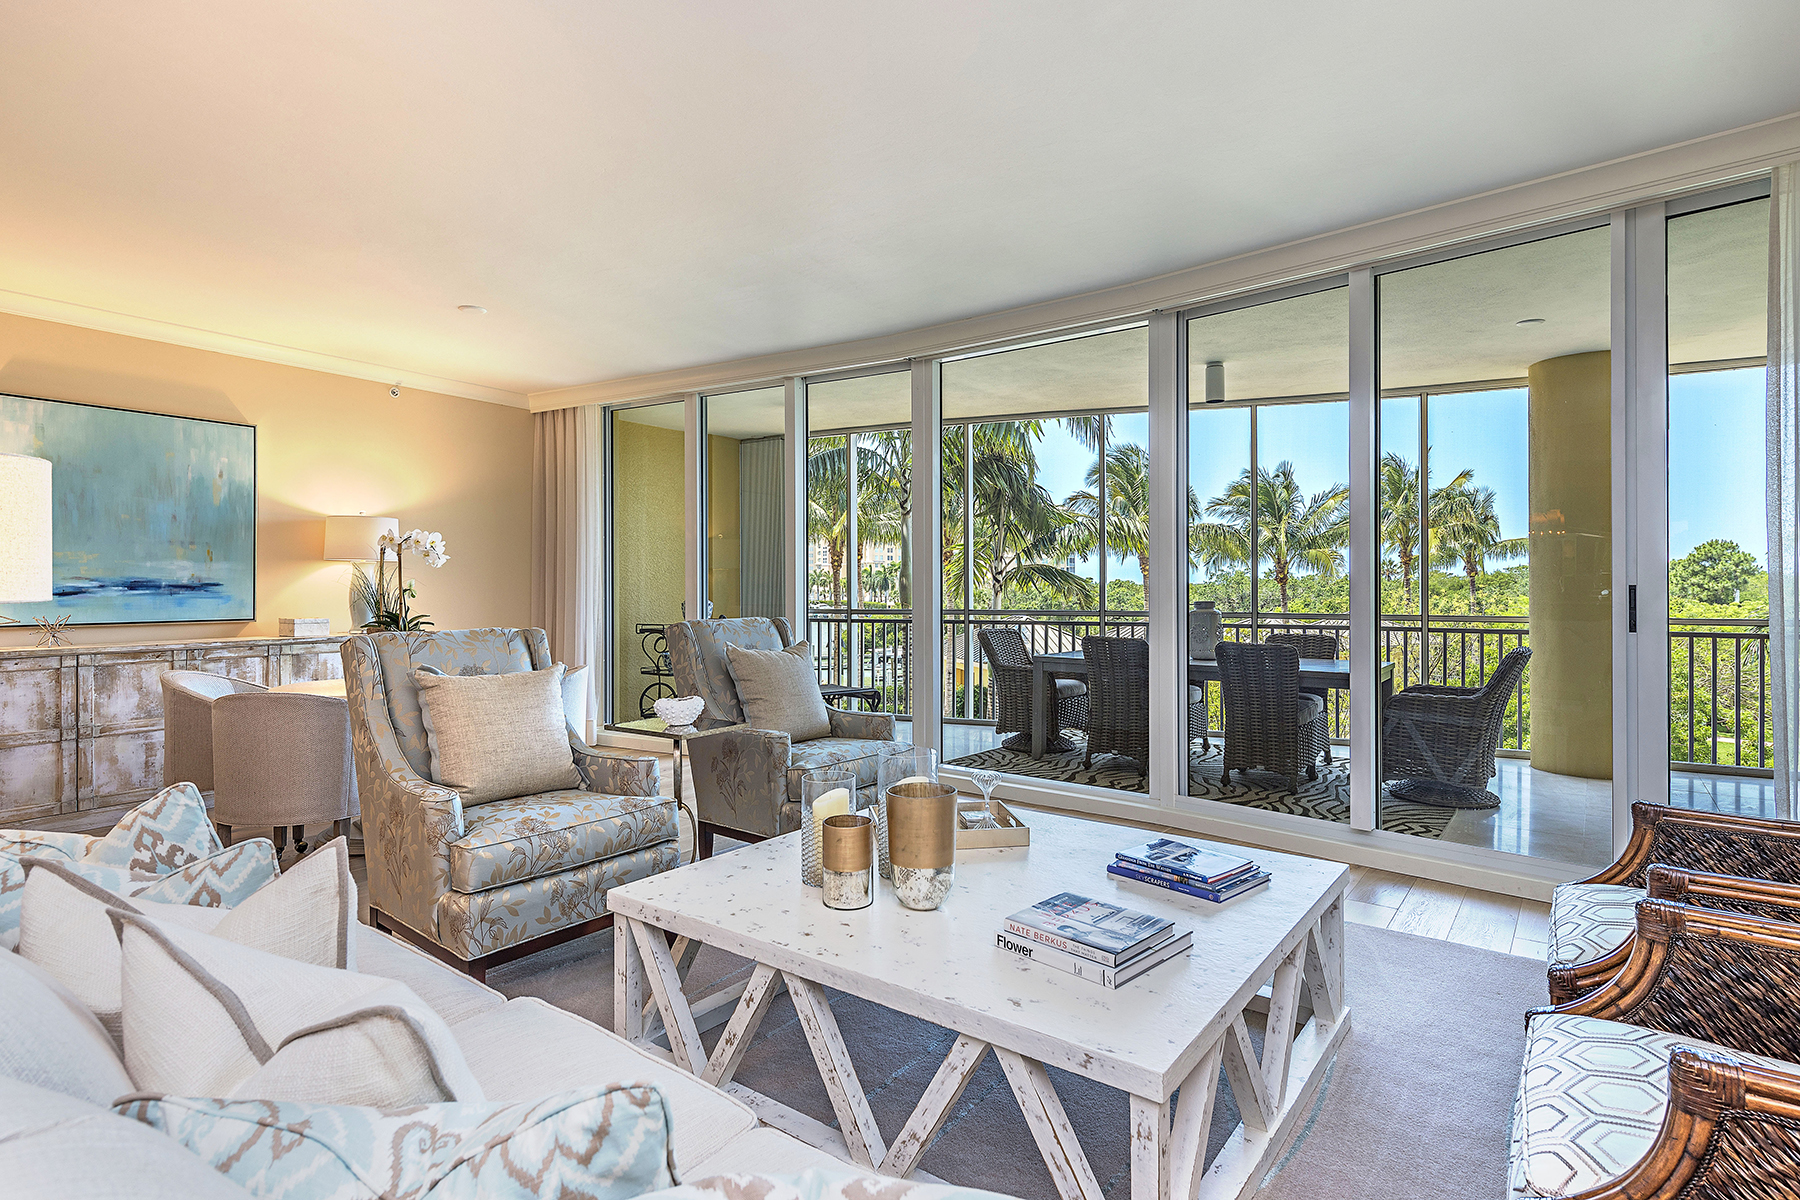 Condominium for Sale at PELICAN ISLE - AQUA 13675 Vanderbilt Dr I-309 Naples, Florida, 34110 United States